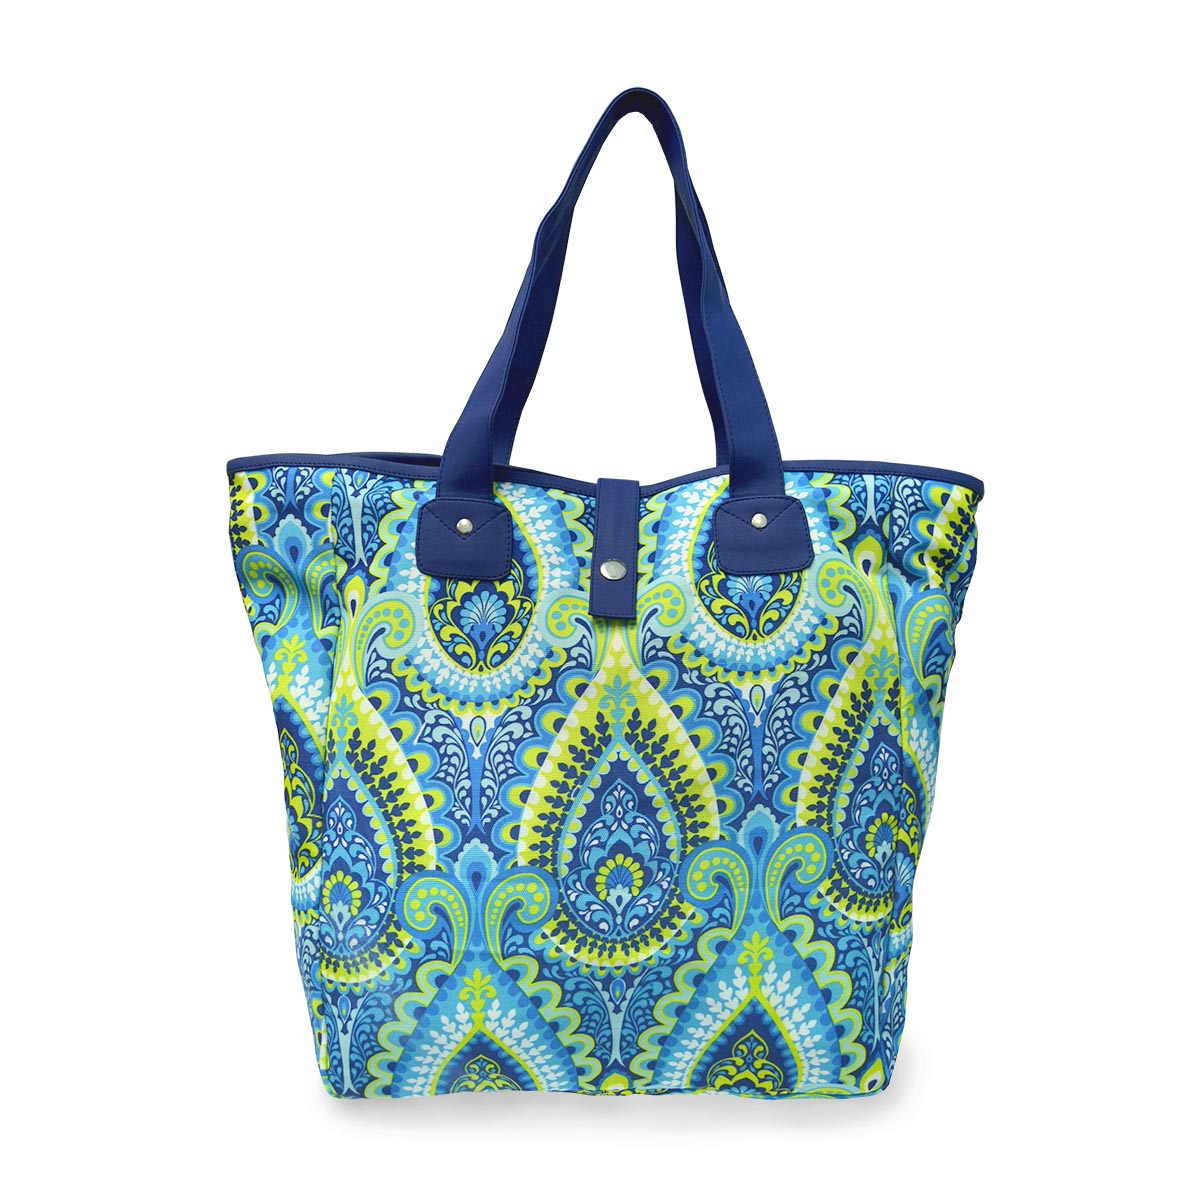 sonoma shoulder bag